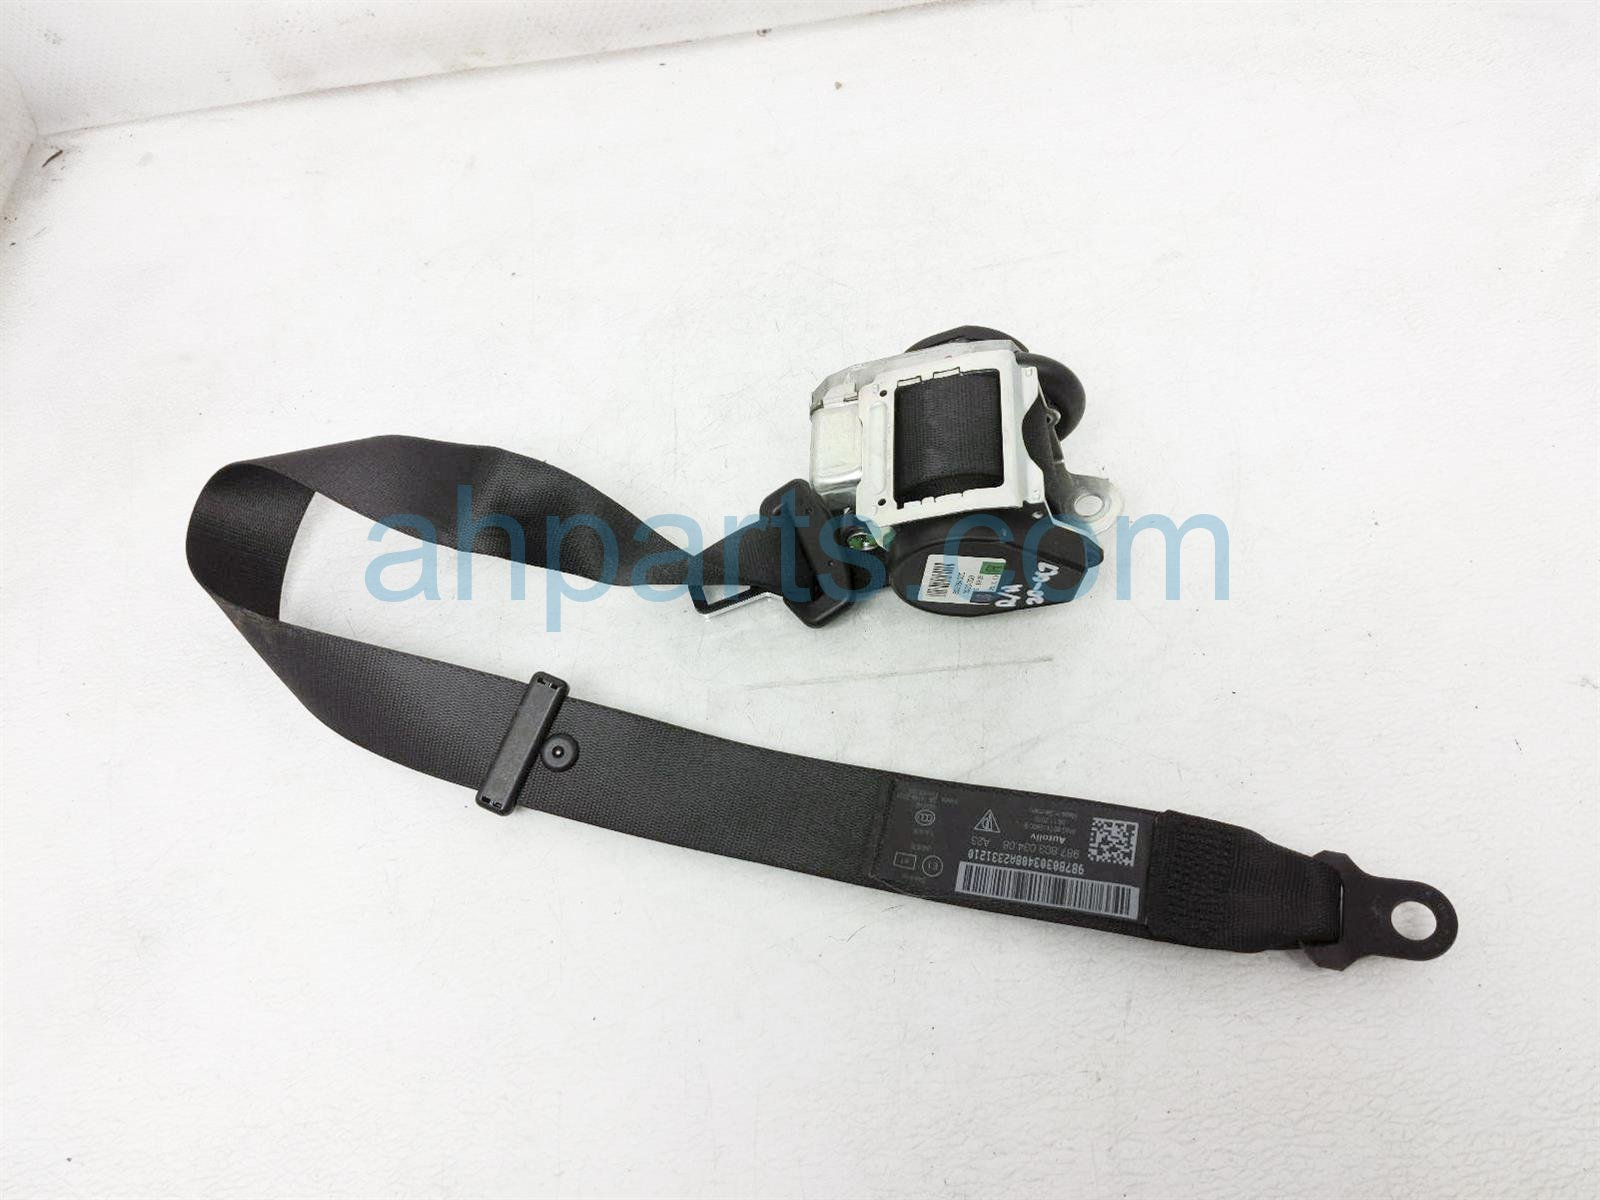 Sold 2011 Porsche Cayman Passenger Seat Belt   Black 987 803 034 08 A23 Replacement